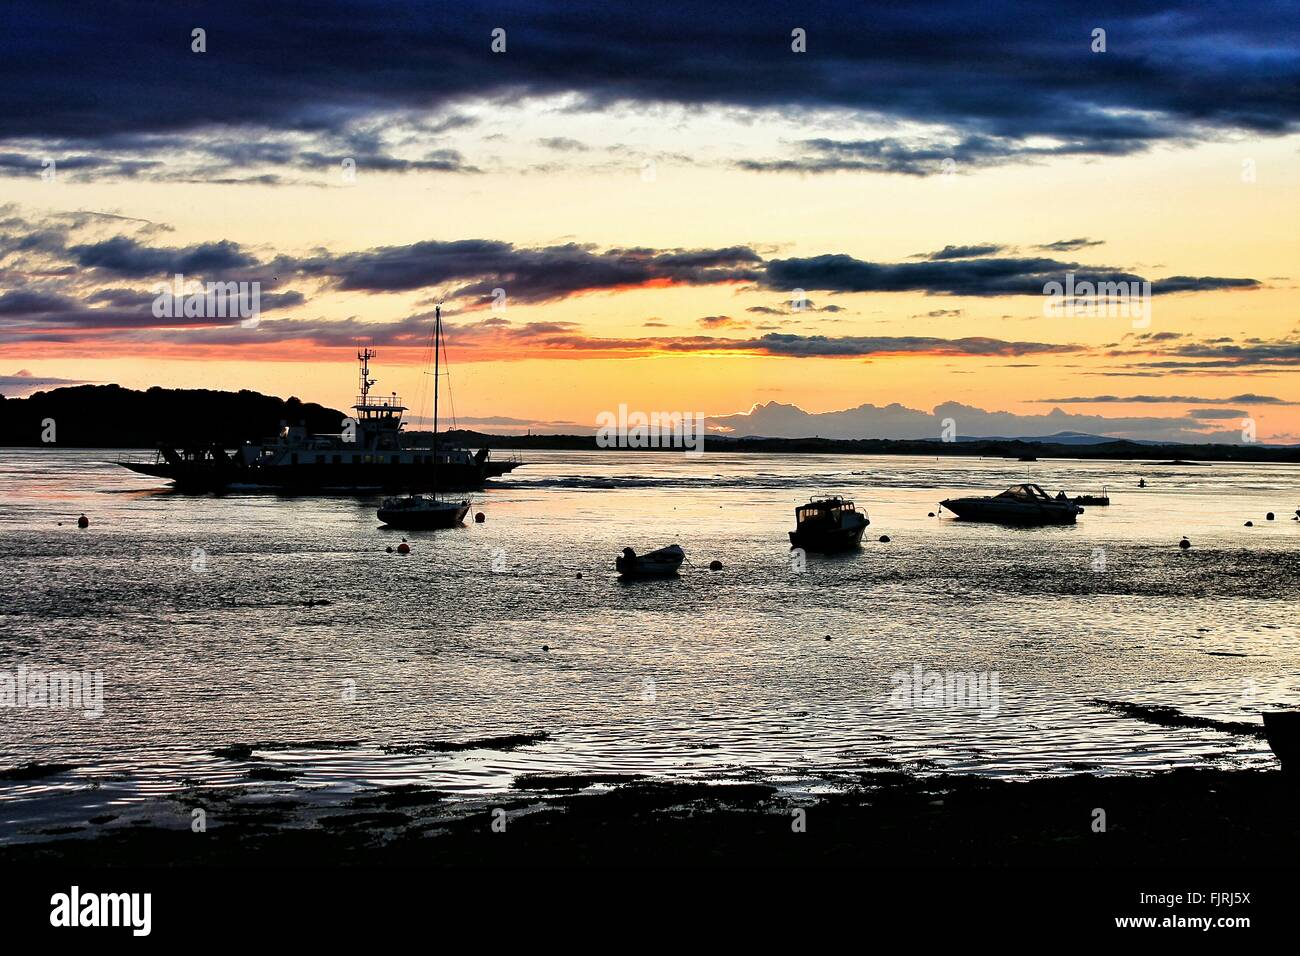 Silhouette Boats Anchored In Sea Against Sunset Sky - Stock Image